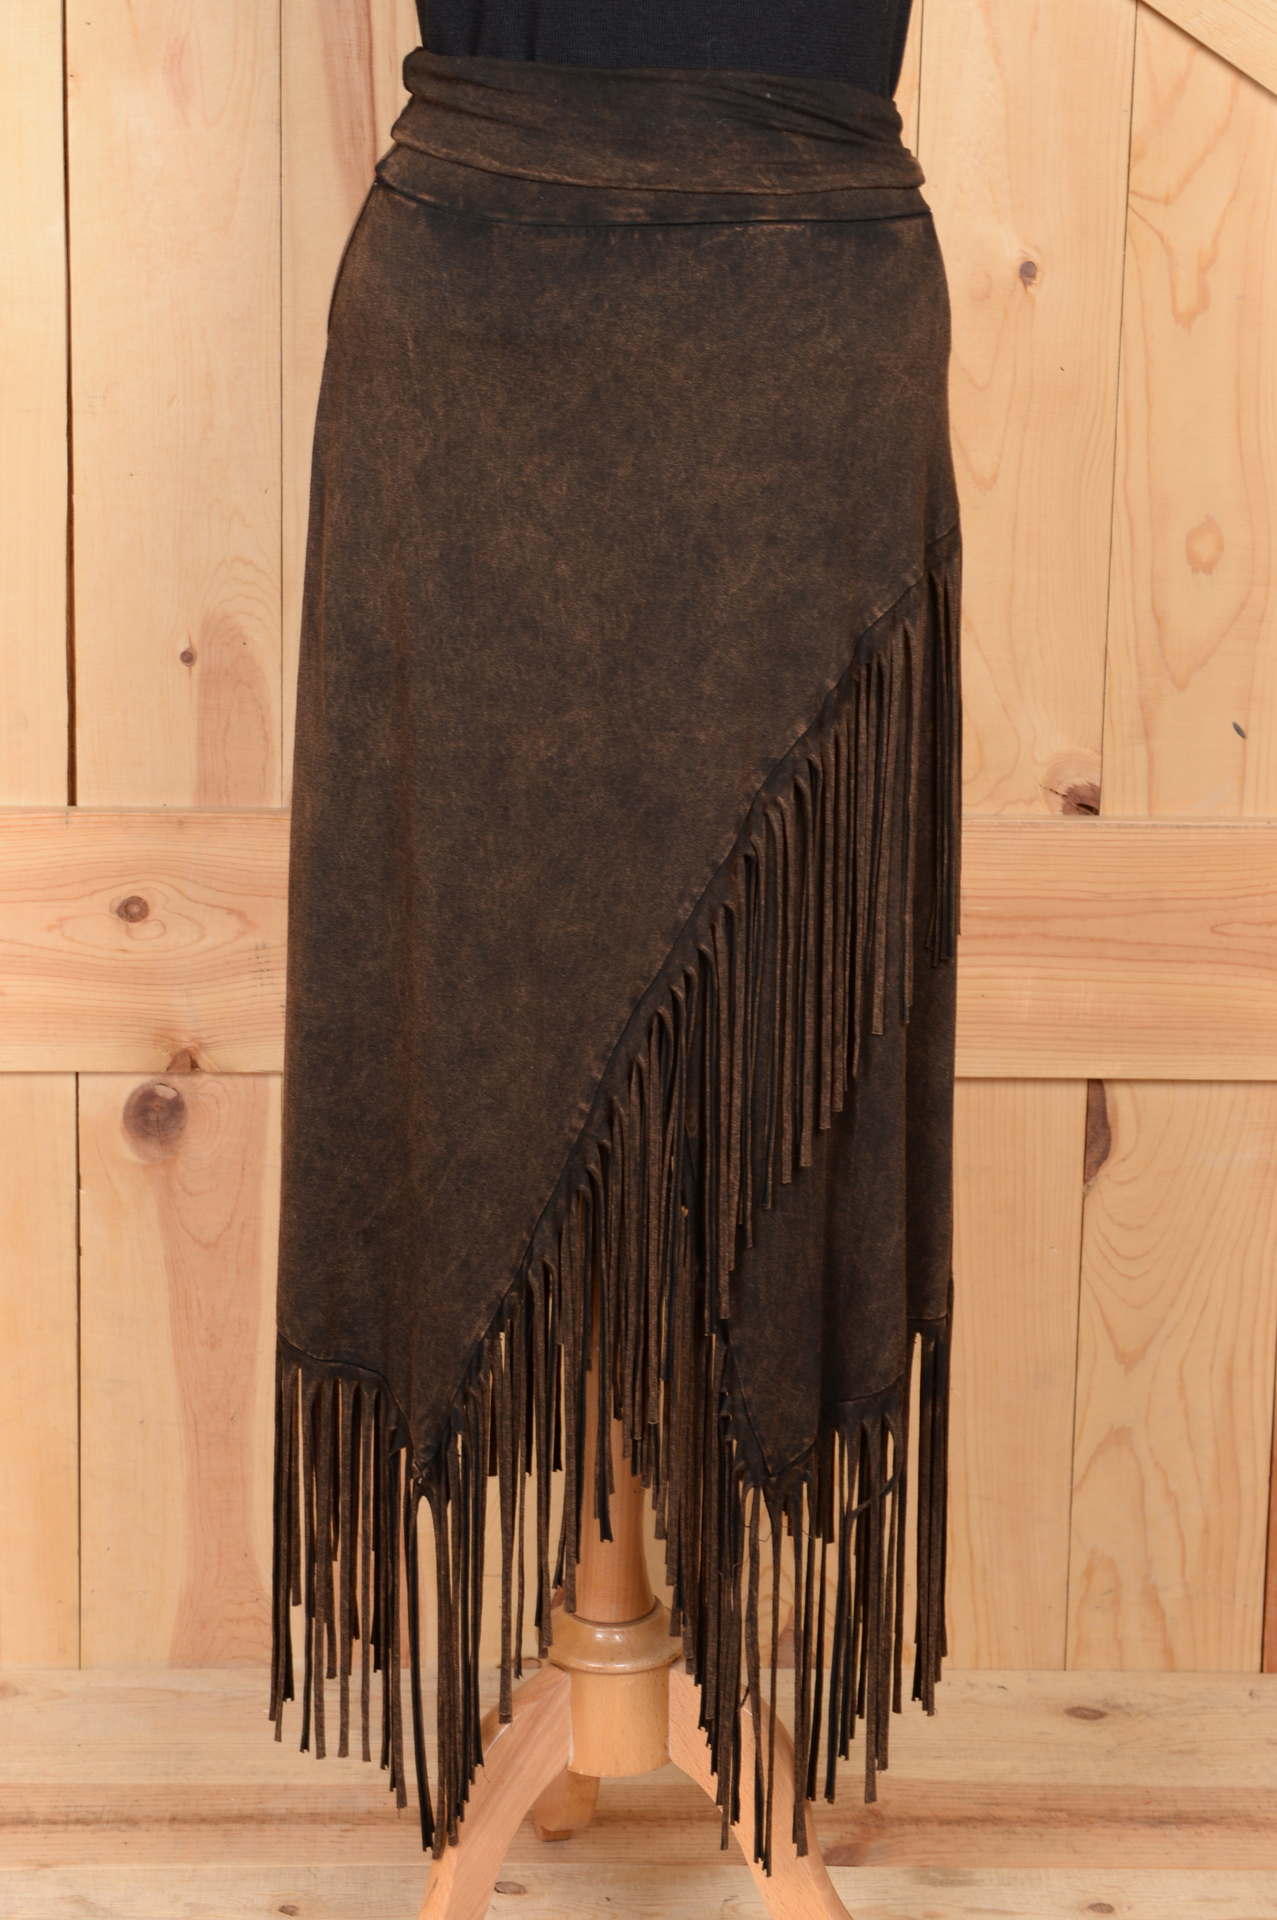 #580BR - BROWN FRINGE KNIT SKIRT - S-XL -- $79.95